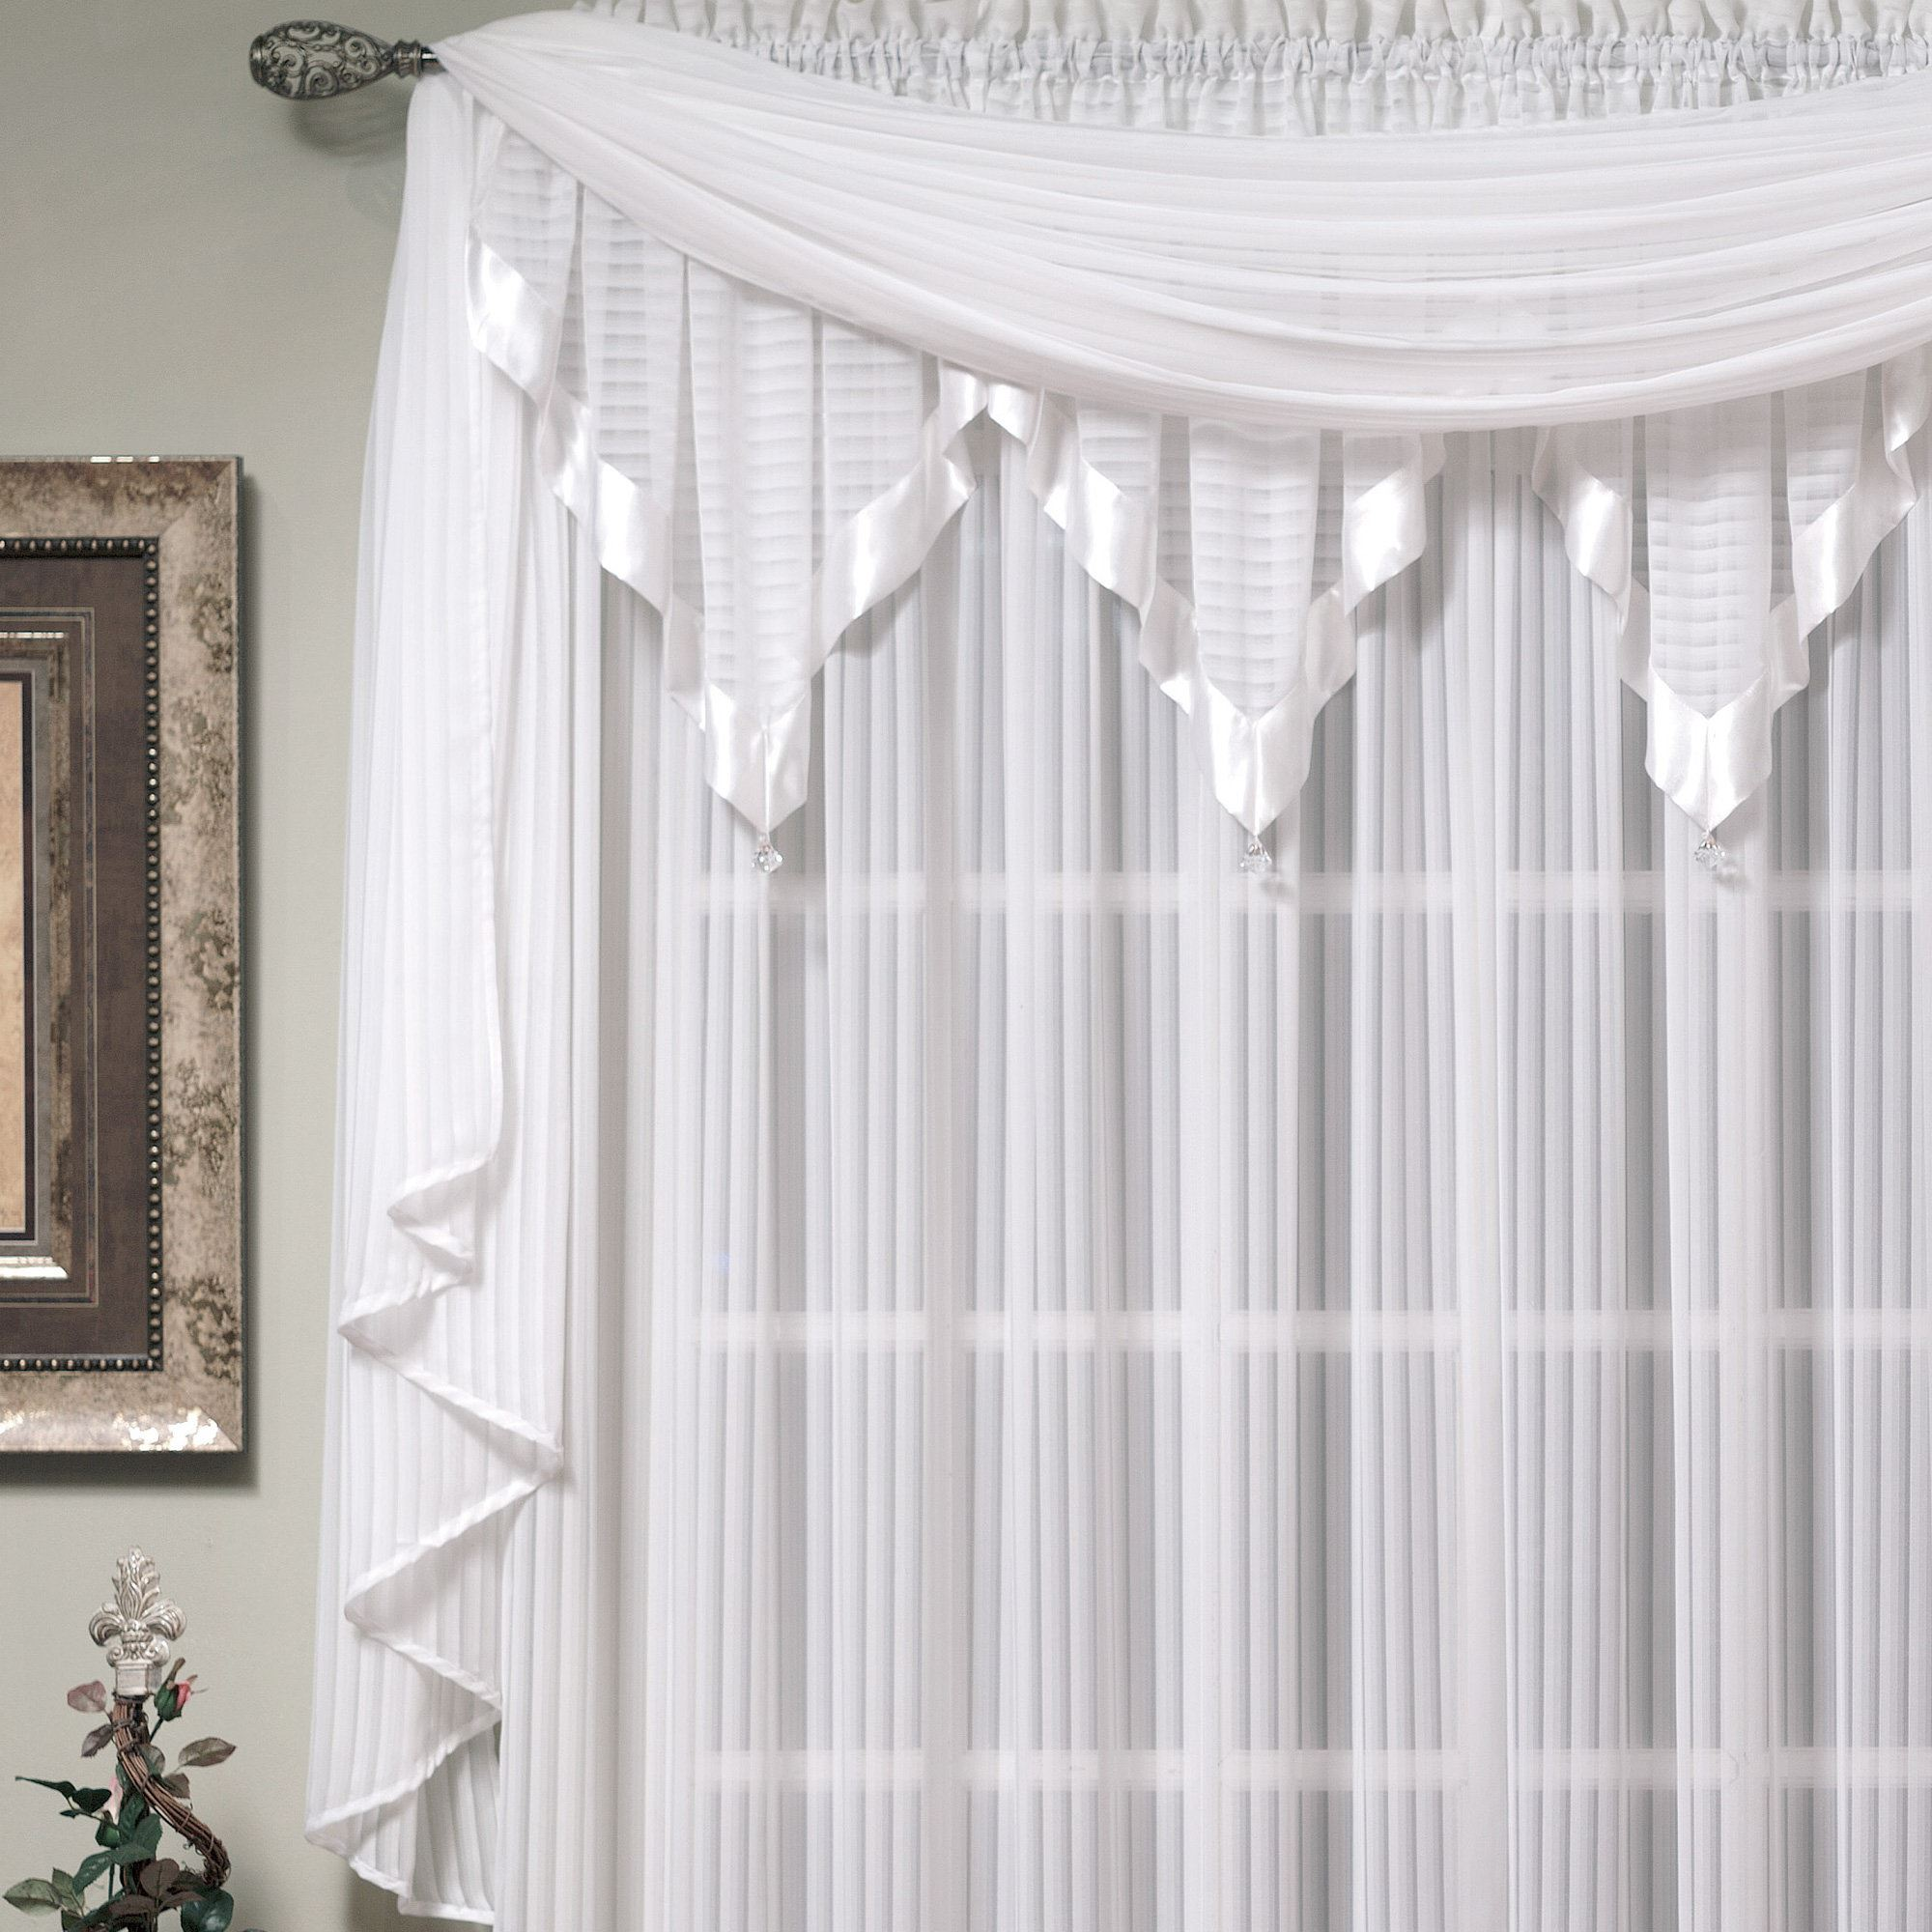 of and curtain design scarf curtains sweet valances valance size full pattern hang ways home tier trellis to set beautiful collection luxury